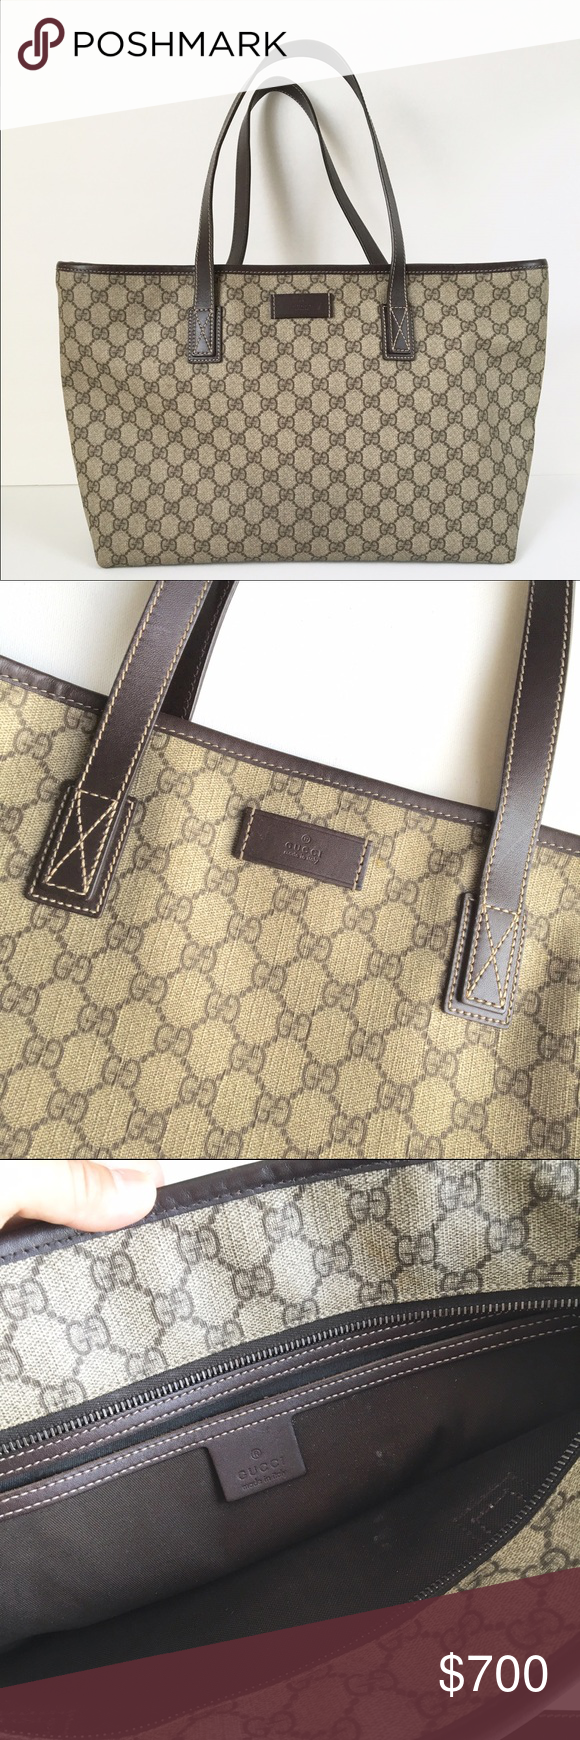 41f850756d1b AUTHENTIC Gucci Monogram supreme neverfull tote Gucci GG monogram supreme  tote. 100% authentic , bought from Barcelona . Bag features dark brown  leather ...